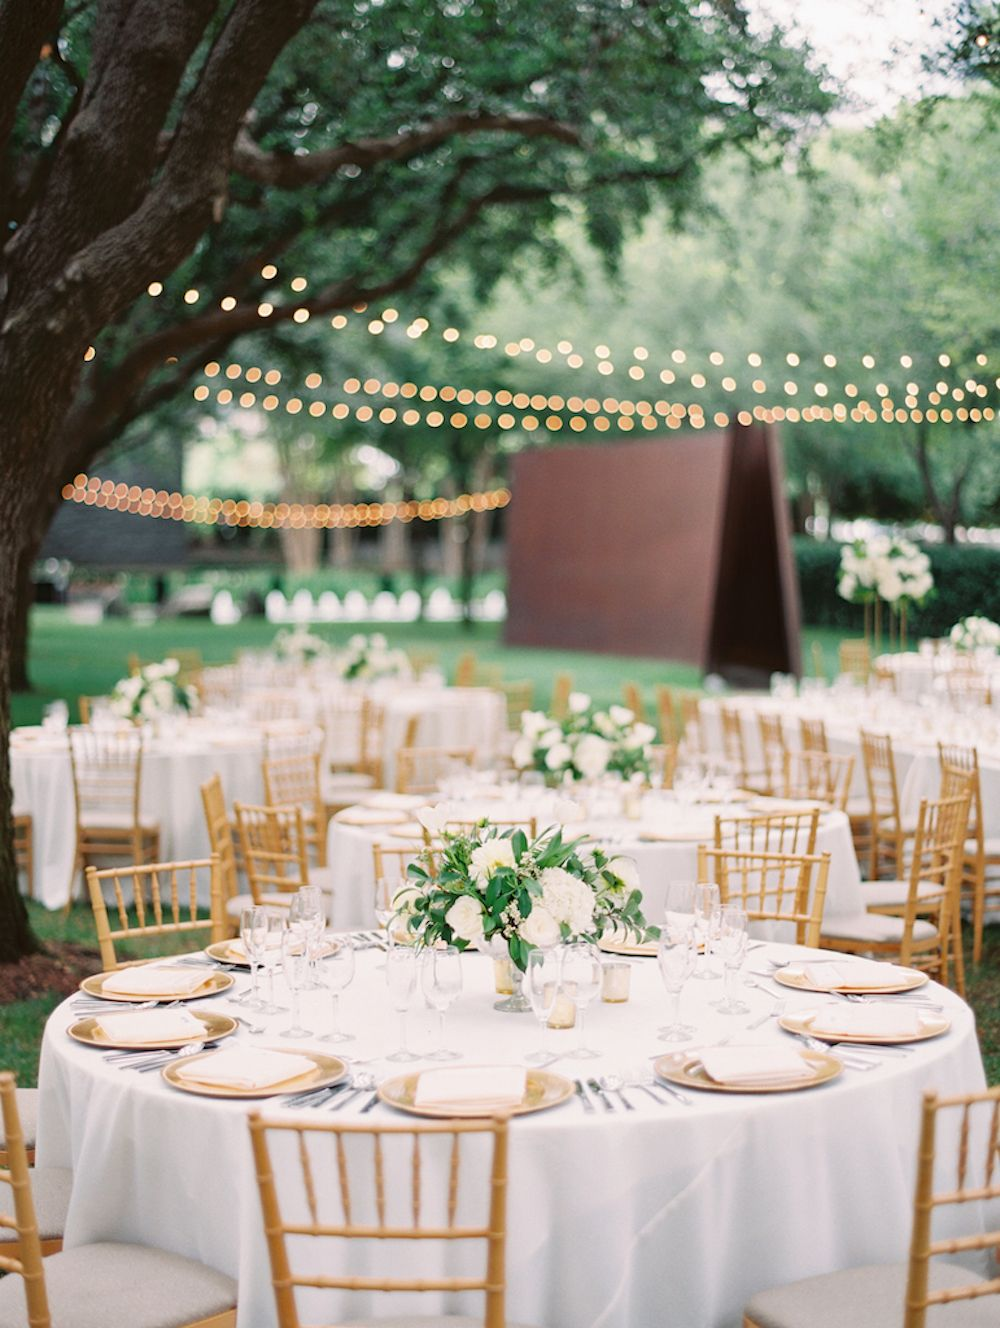 Classic Garden Wedding At Nasher Sculpture Center Elizabeth Anne Designs The Wedding Blog Green Gold Weddings White And Gold Wedding Themes White And Gold Decor